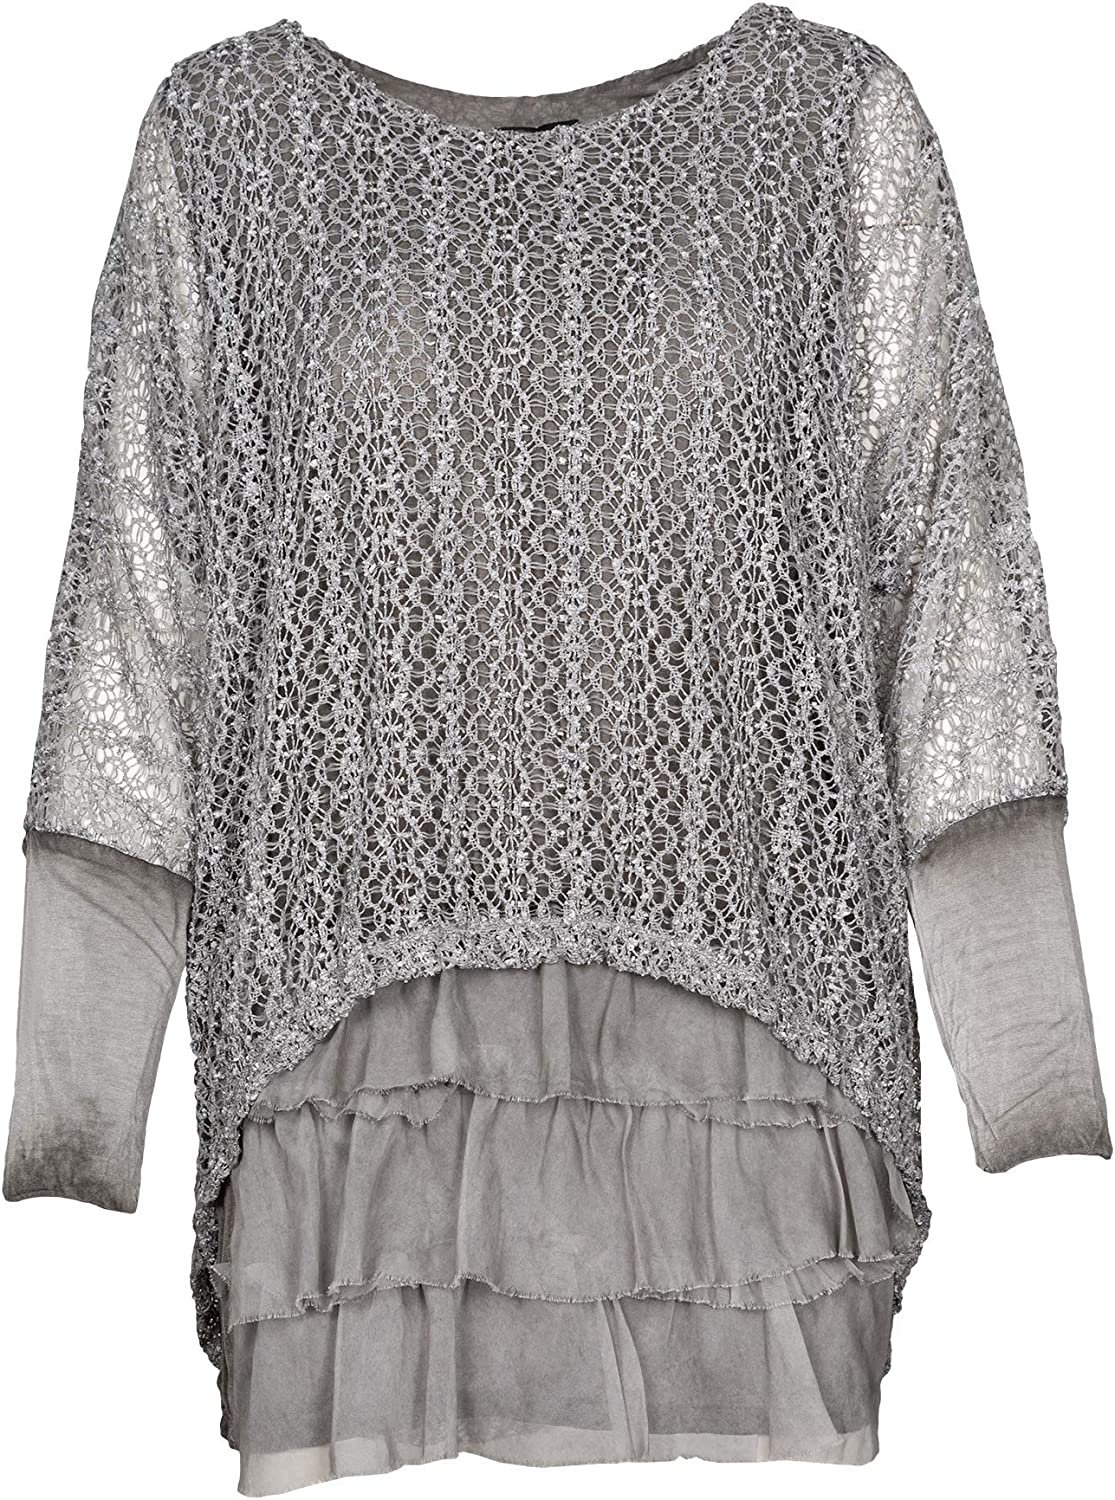 M Made in Italy Women's Long Sleeves Tunic with Sequins